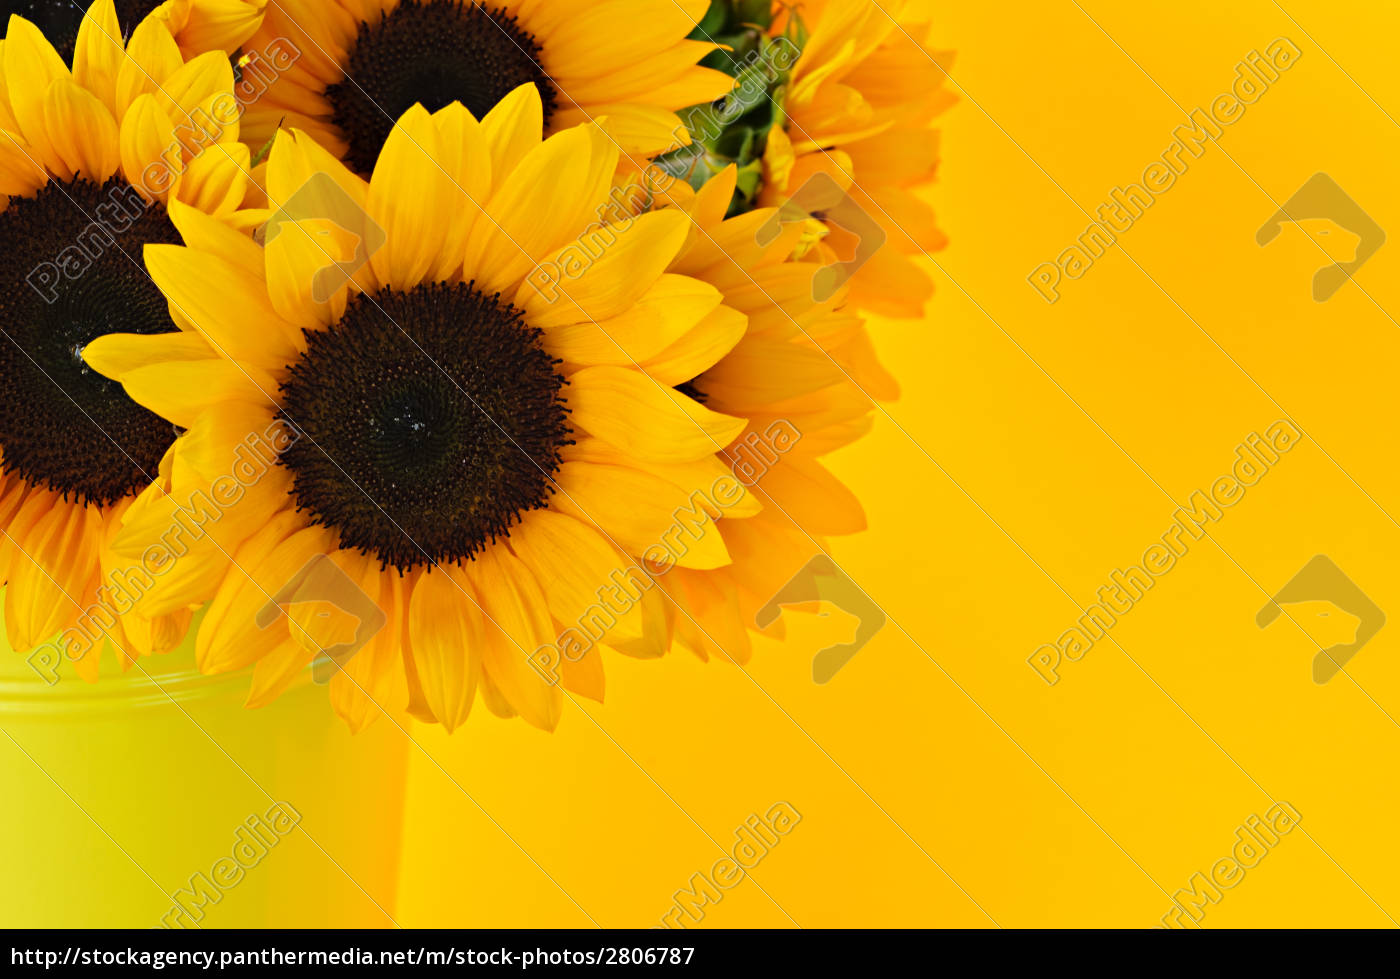 sunflowers, in, vase - 2806787